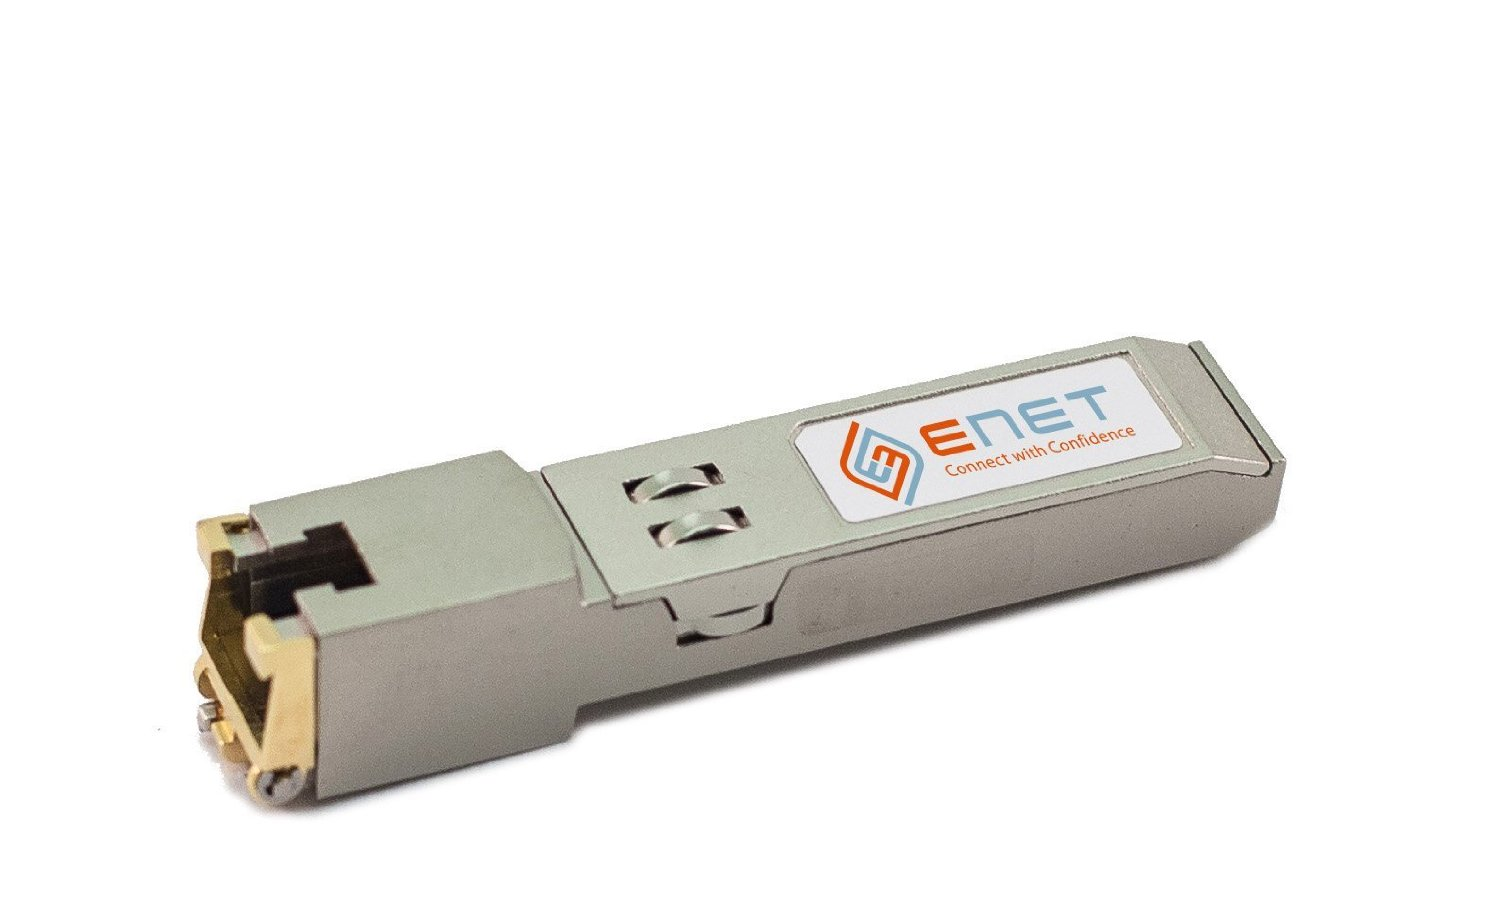 ENET Components | J8177C-ENC | 1000BASE-T SFP RJ45 100m OEM Compatible Transceiver, Lifetime Warranty Included